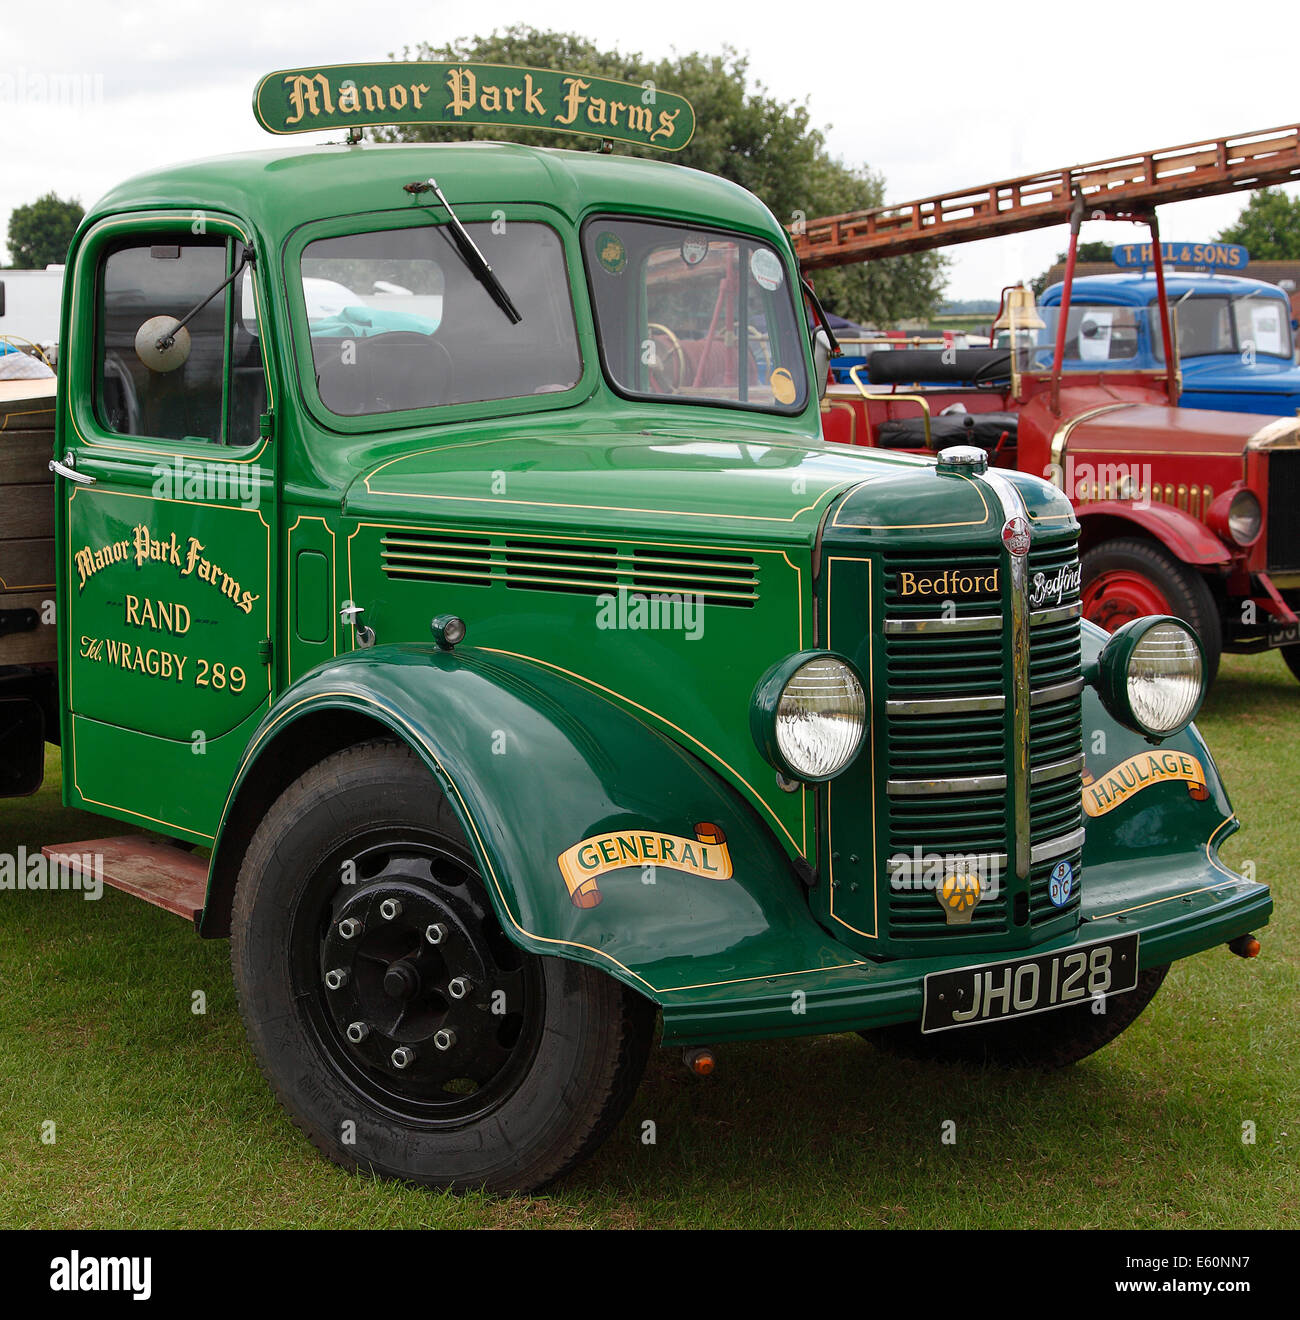 BRITISH VINTAGE BEDFORD TRUCK.  ENGLAND.  UK - Stock Image